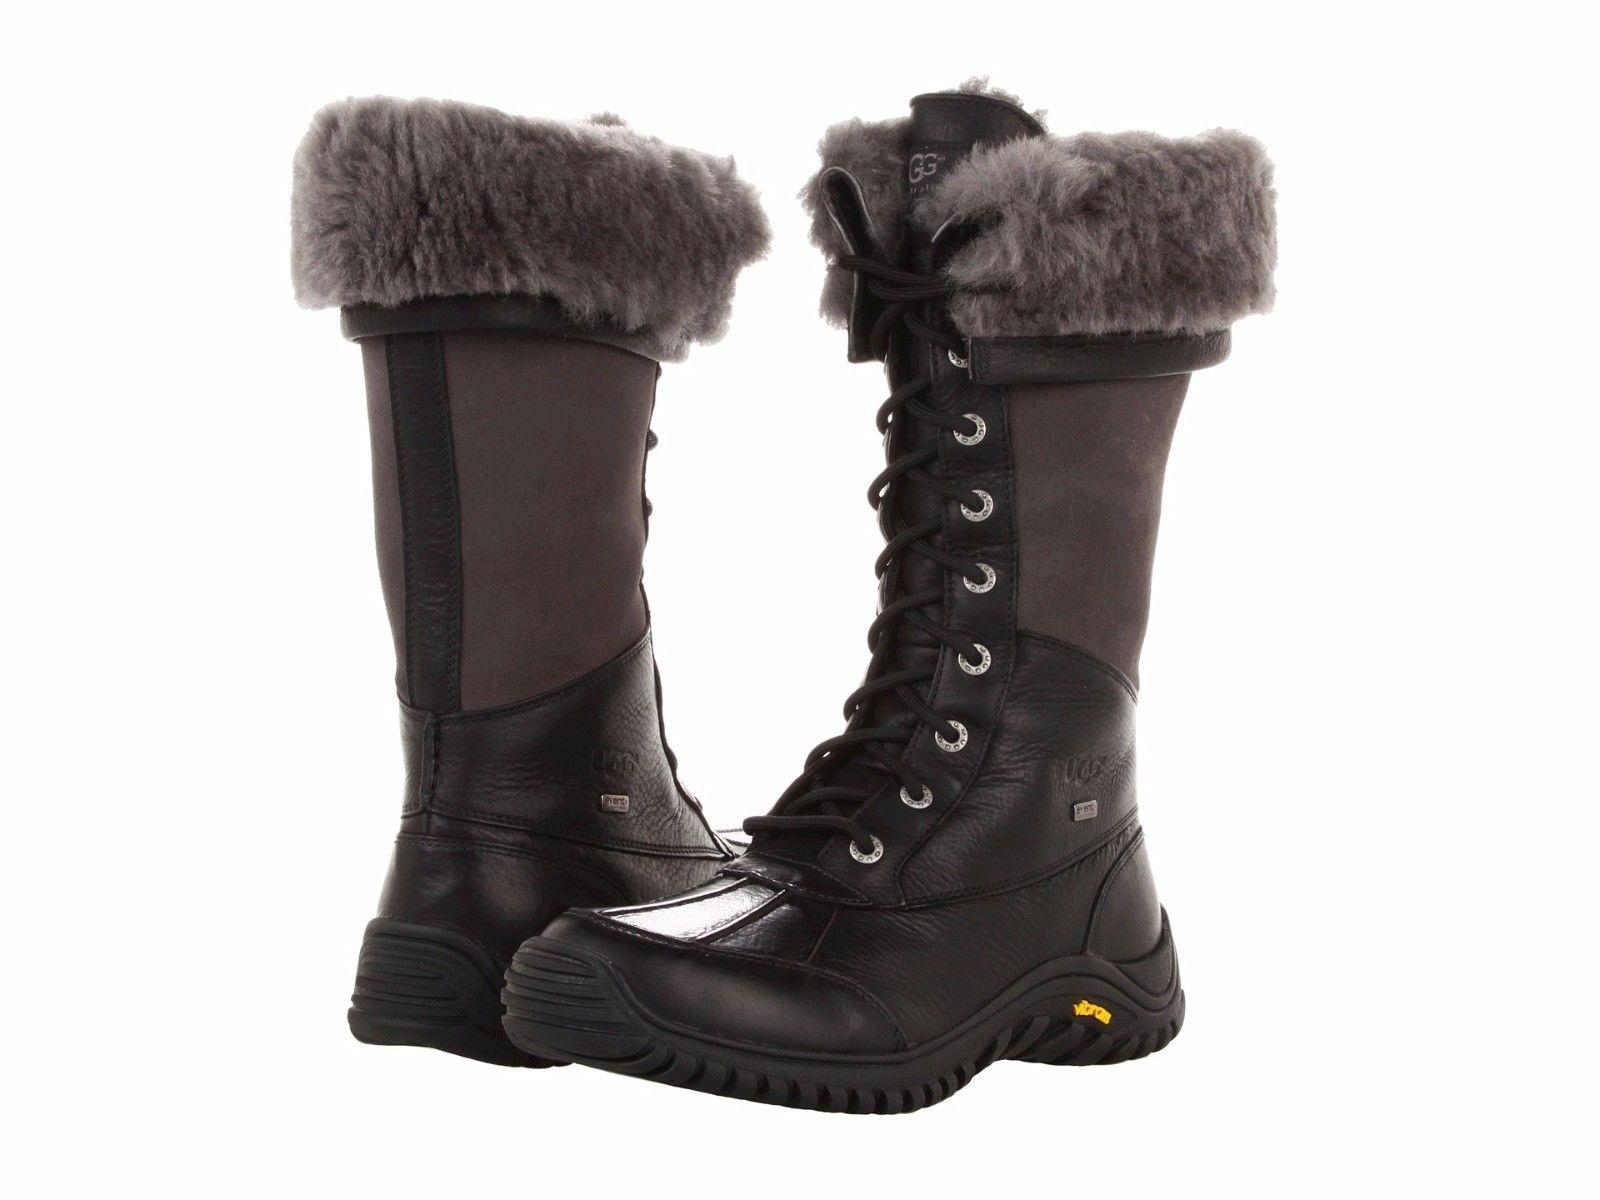 UGG Australia For Her 1001786 Size 5 Black Boots ...